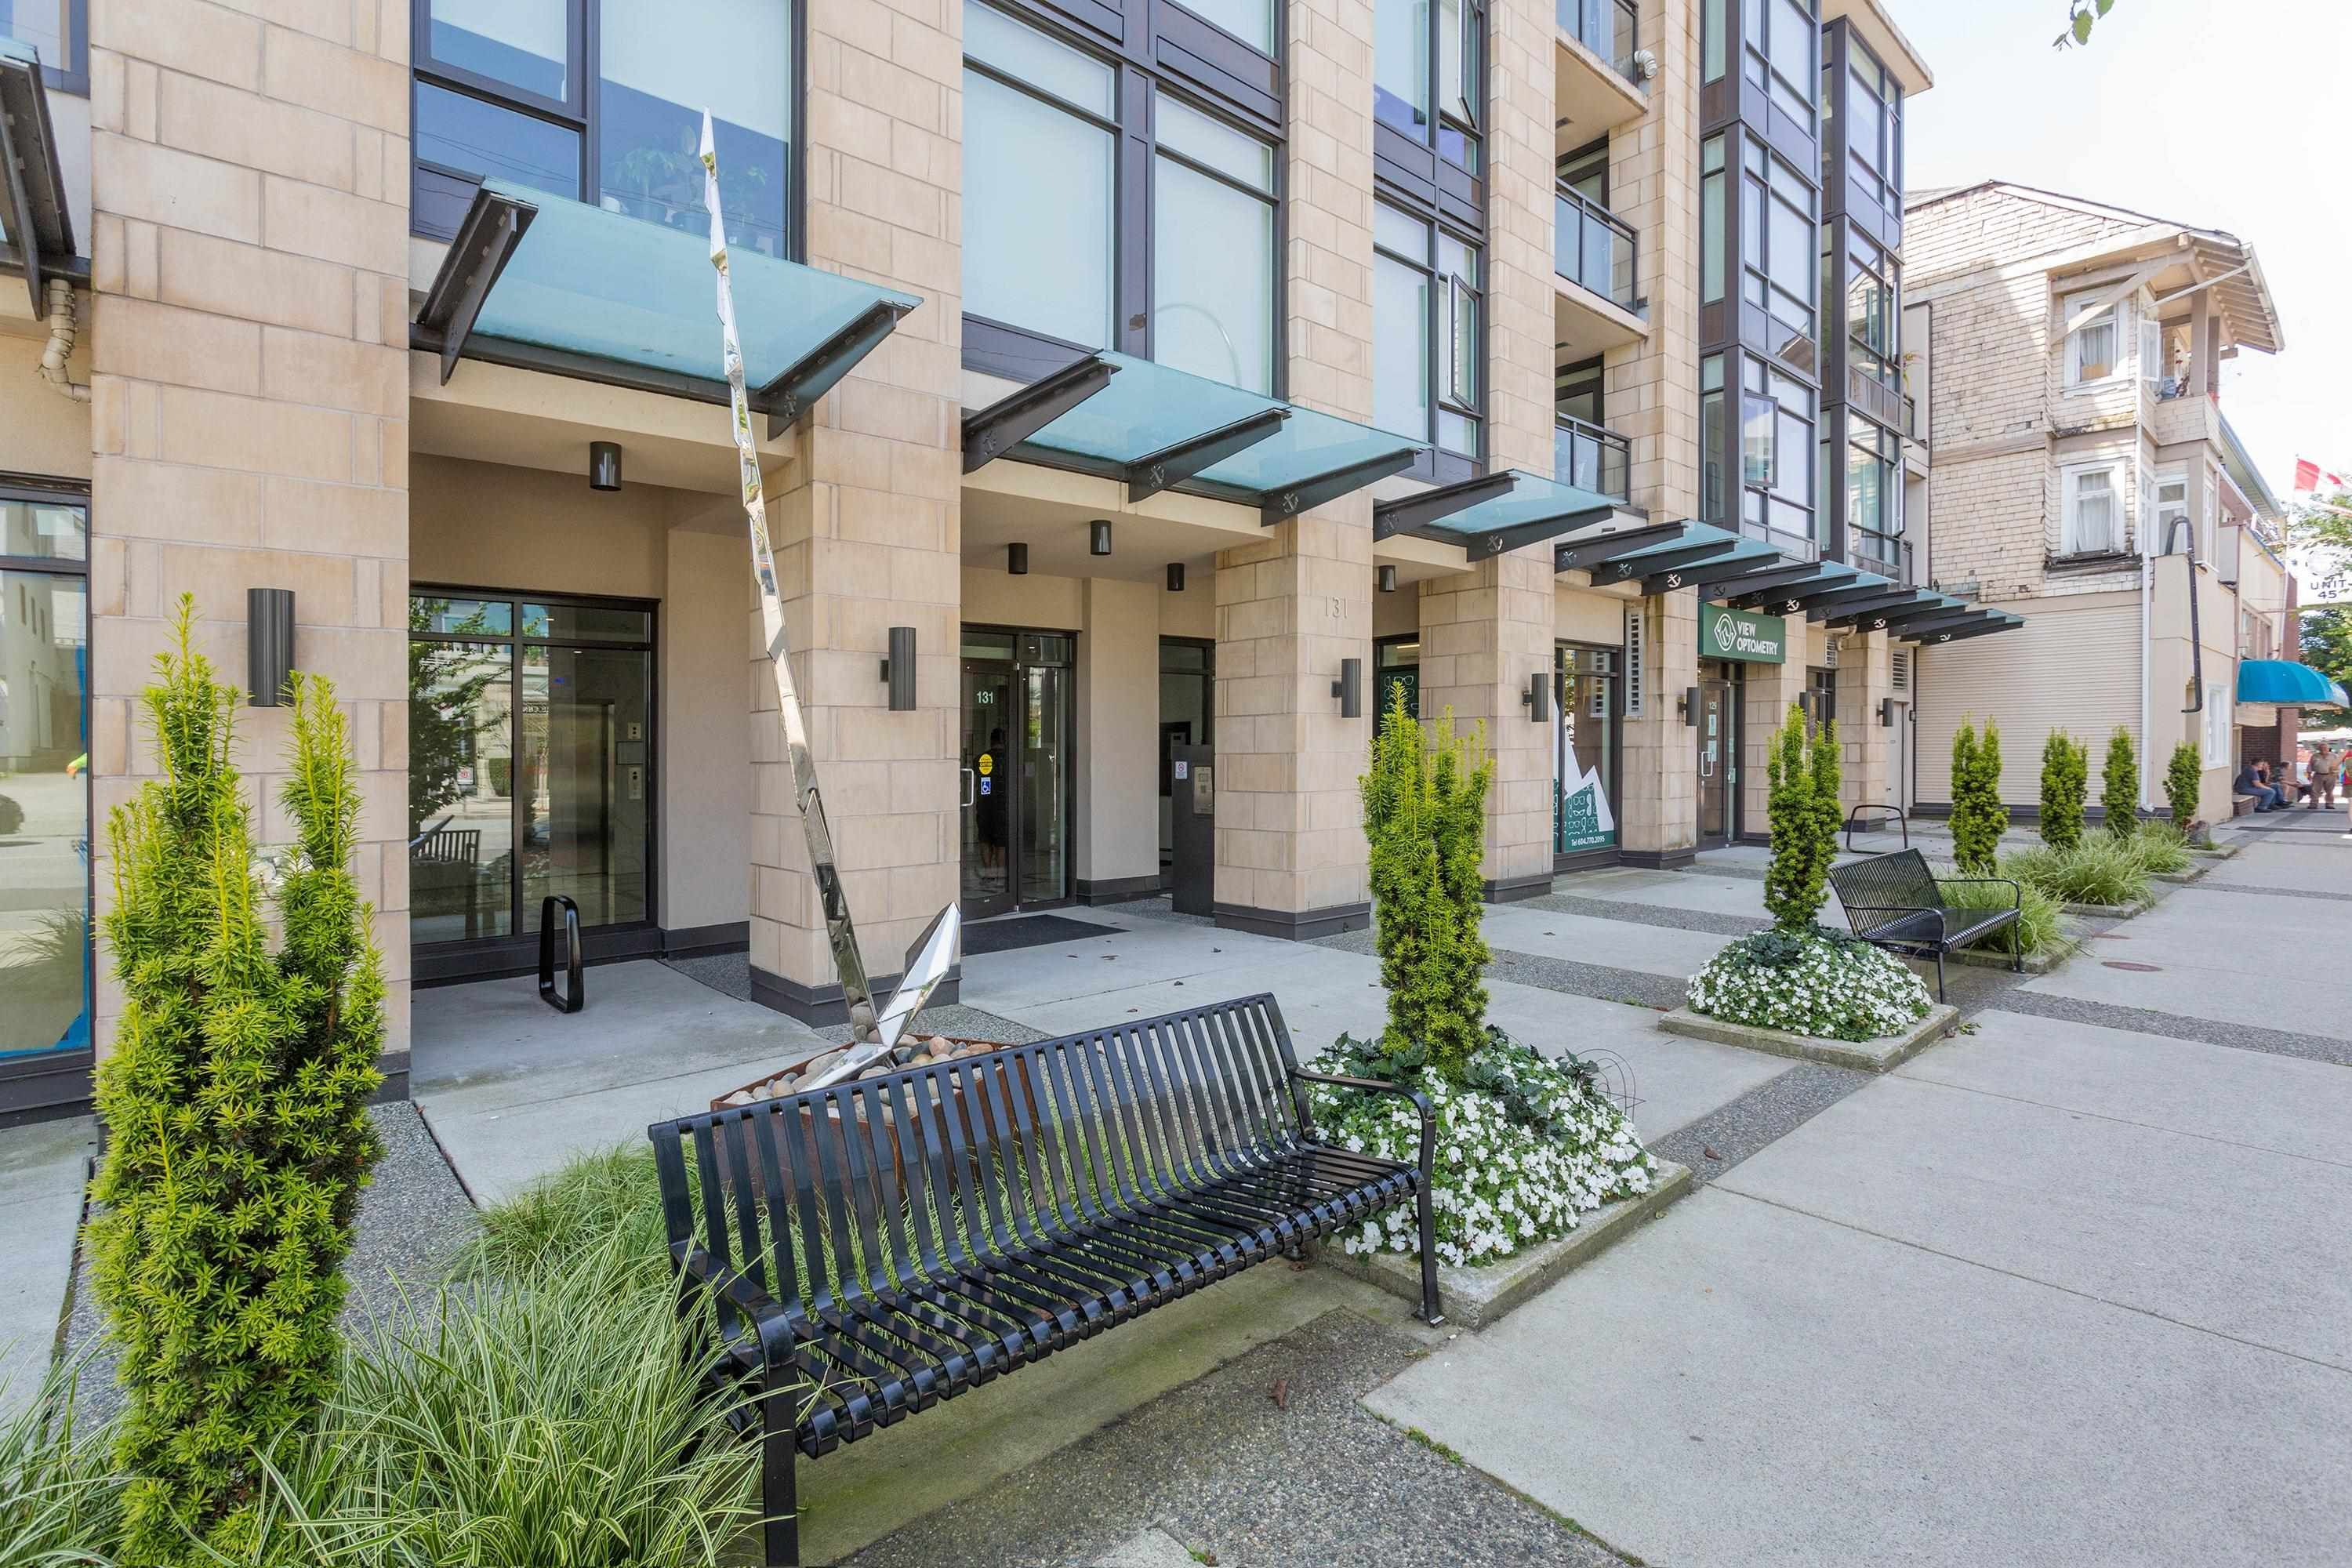 """Main Photo: 407 131 E 3RD Street in North Vancouver: Lower Lonsdale Condo for sale in """"THE ANCHOR"""" : MLS®# R2615720"""